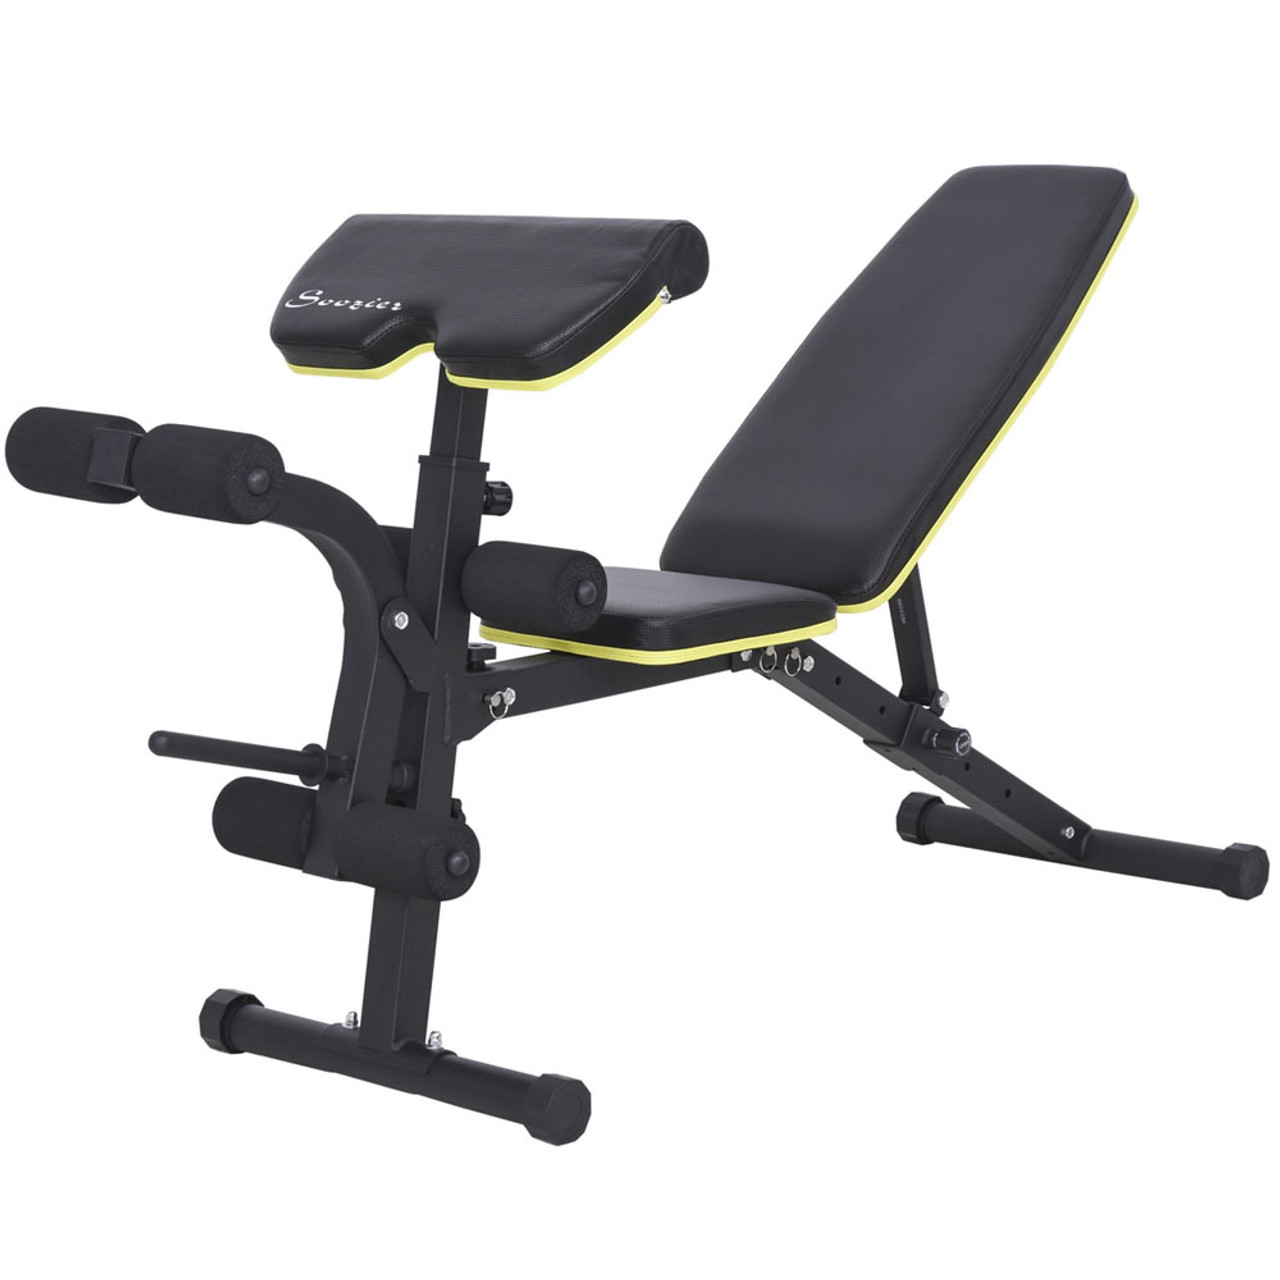 Adjustable Sit-Up Dumbbell Bench